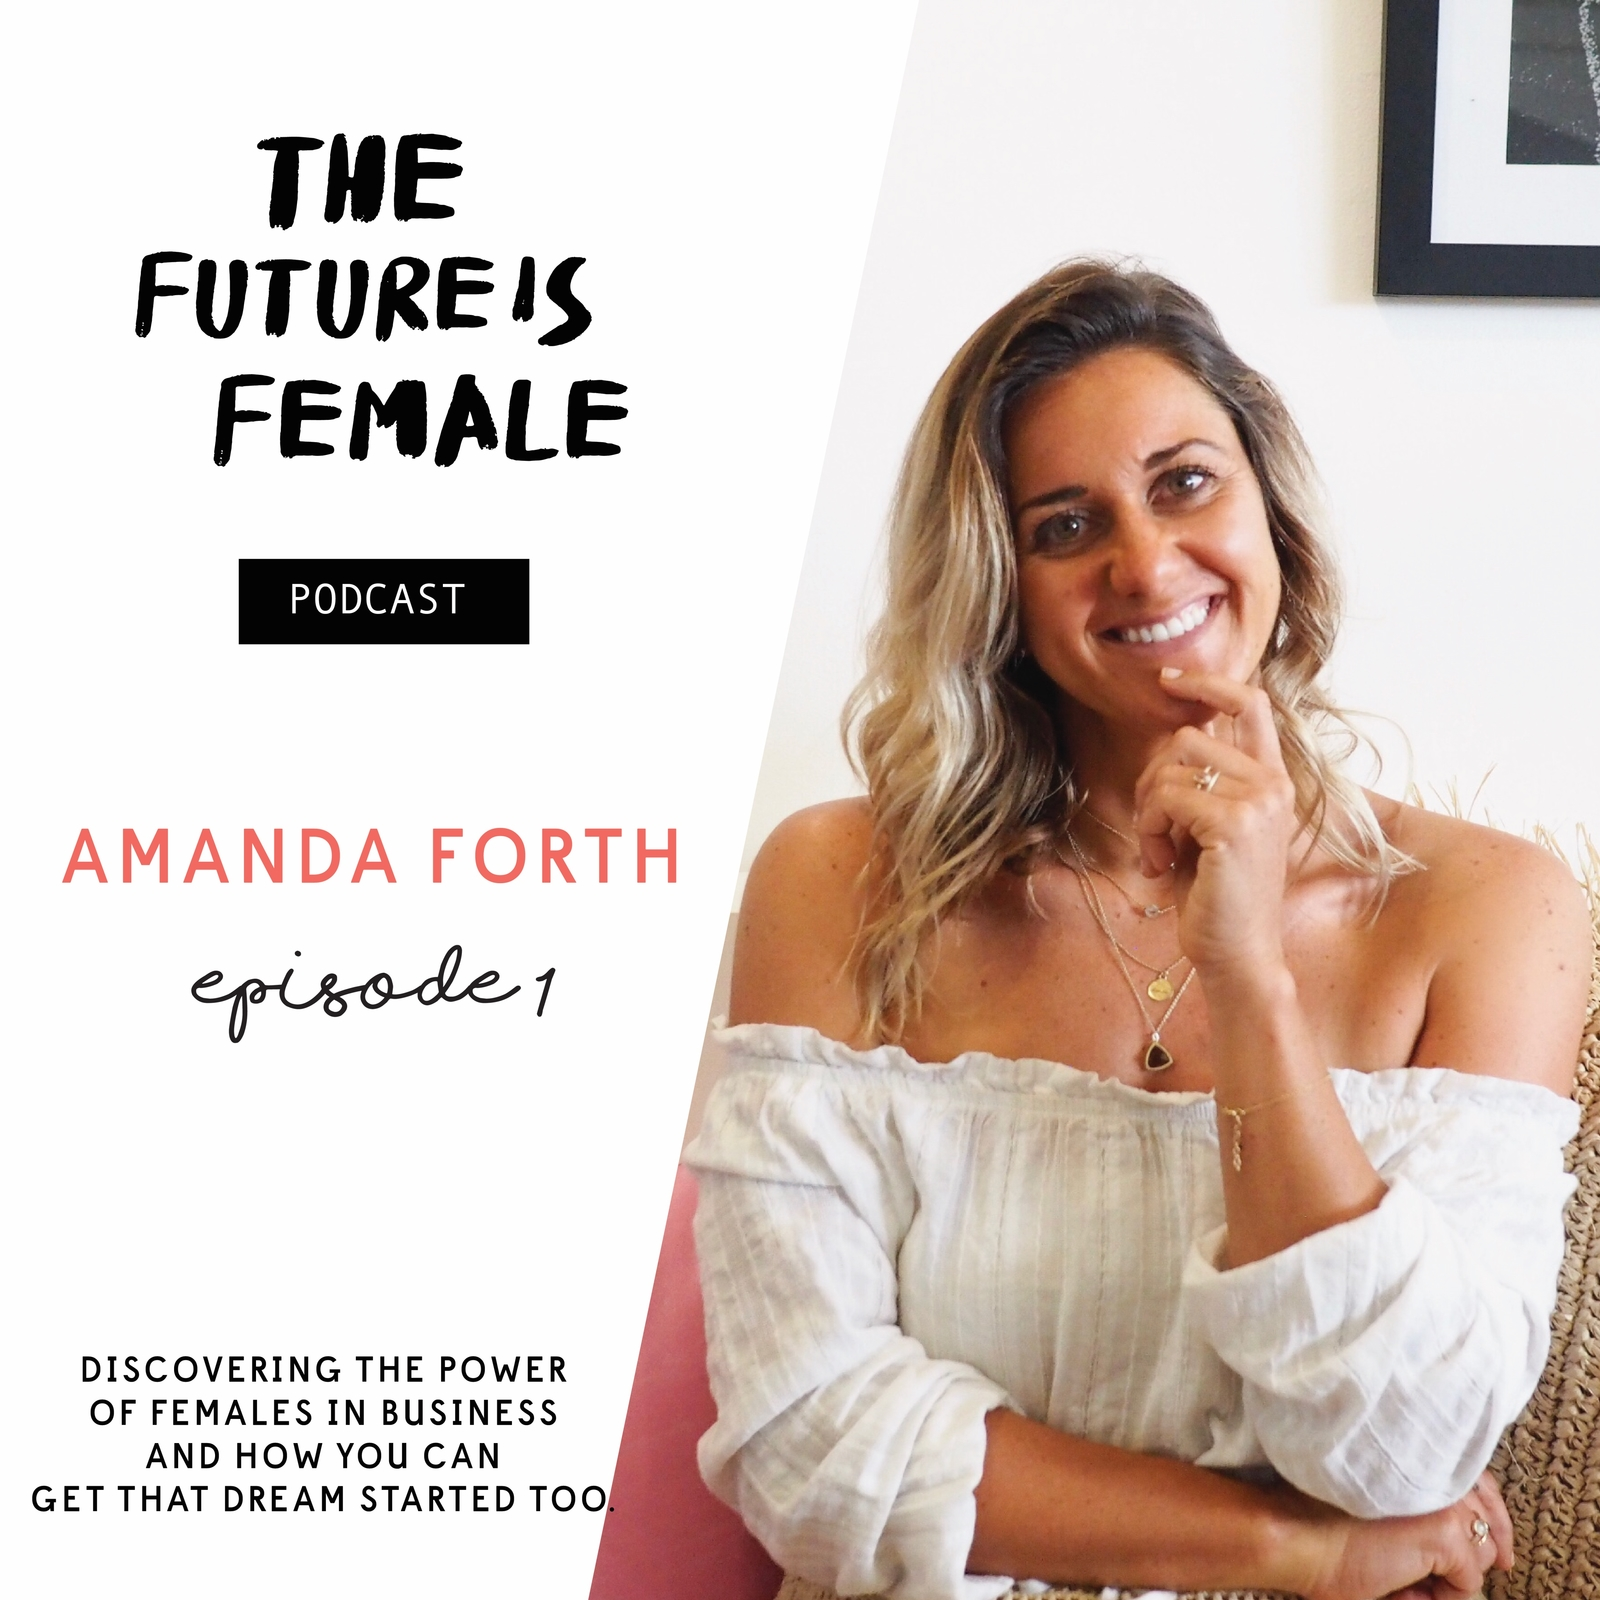 The future is Female podcast with host jette virdi talking to Amanda forth